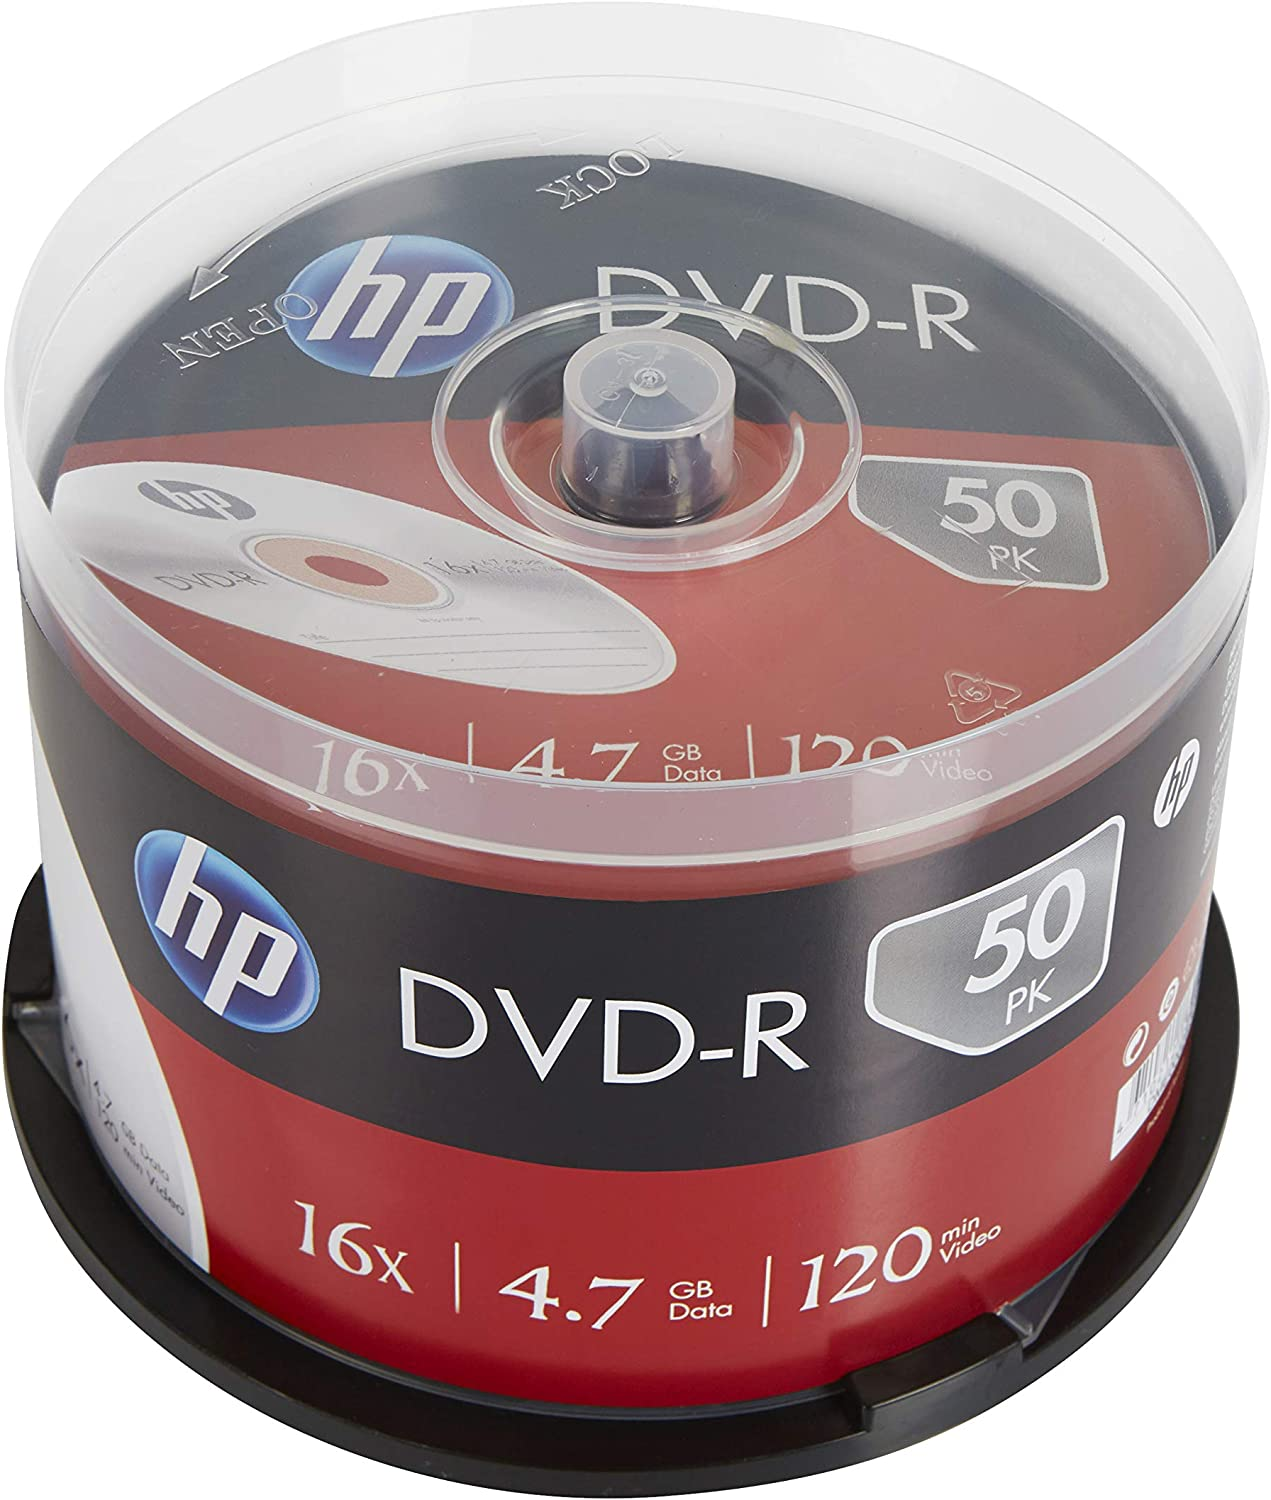 Dvd Blank Dvd R 4 7gbyte 120 240 Minutes 16x 50 Sp Computers Accessories